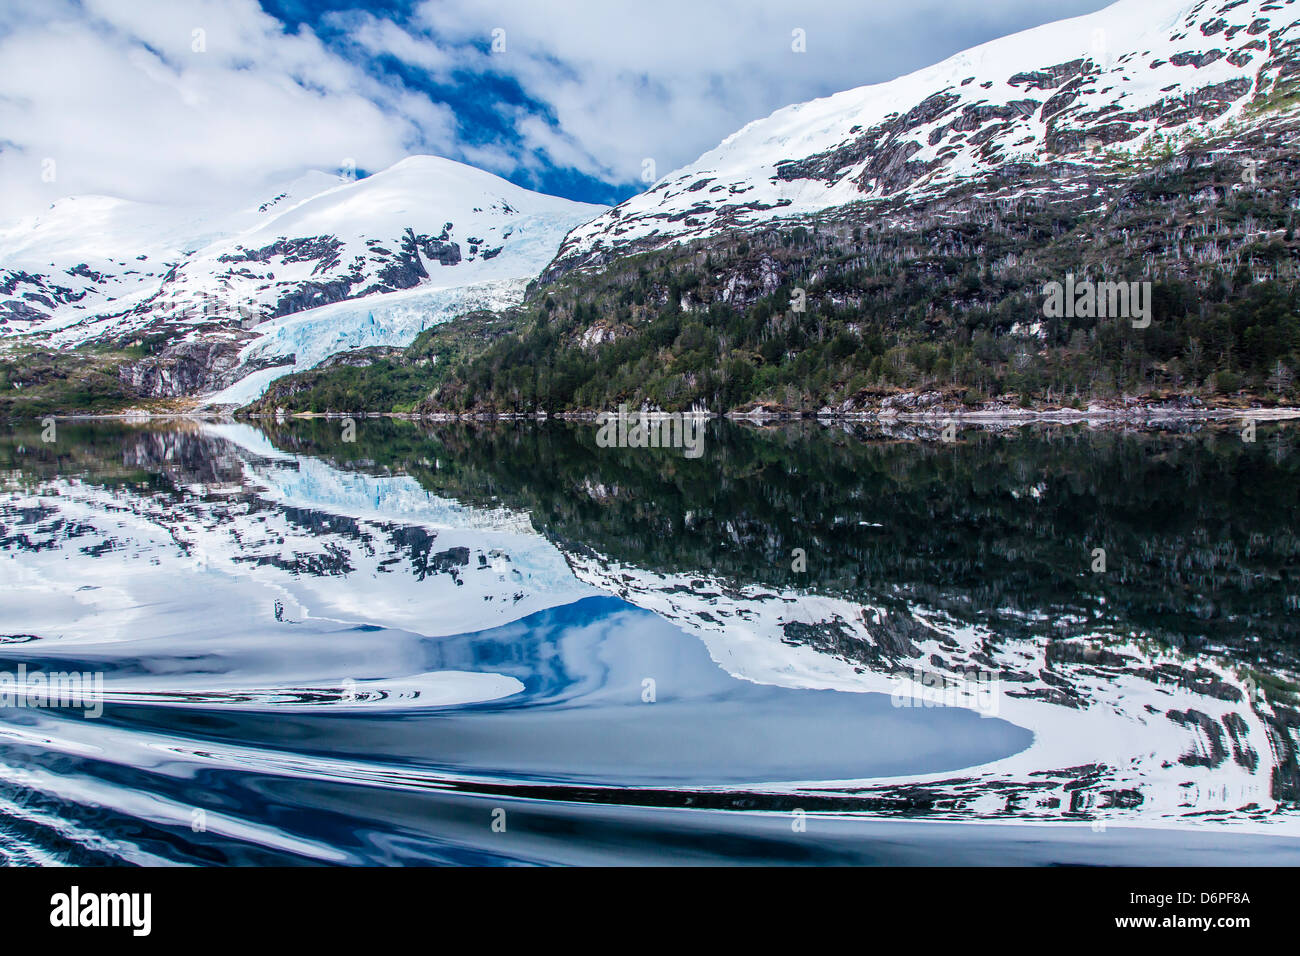 Reflections in calm water in the Strait of Magellan, Patagonia, Chile, South America - Stock Image